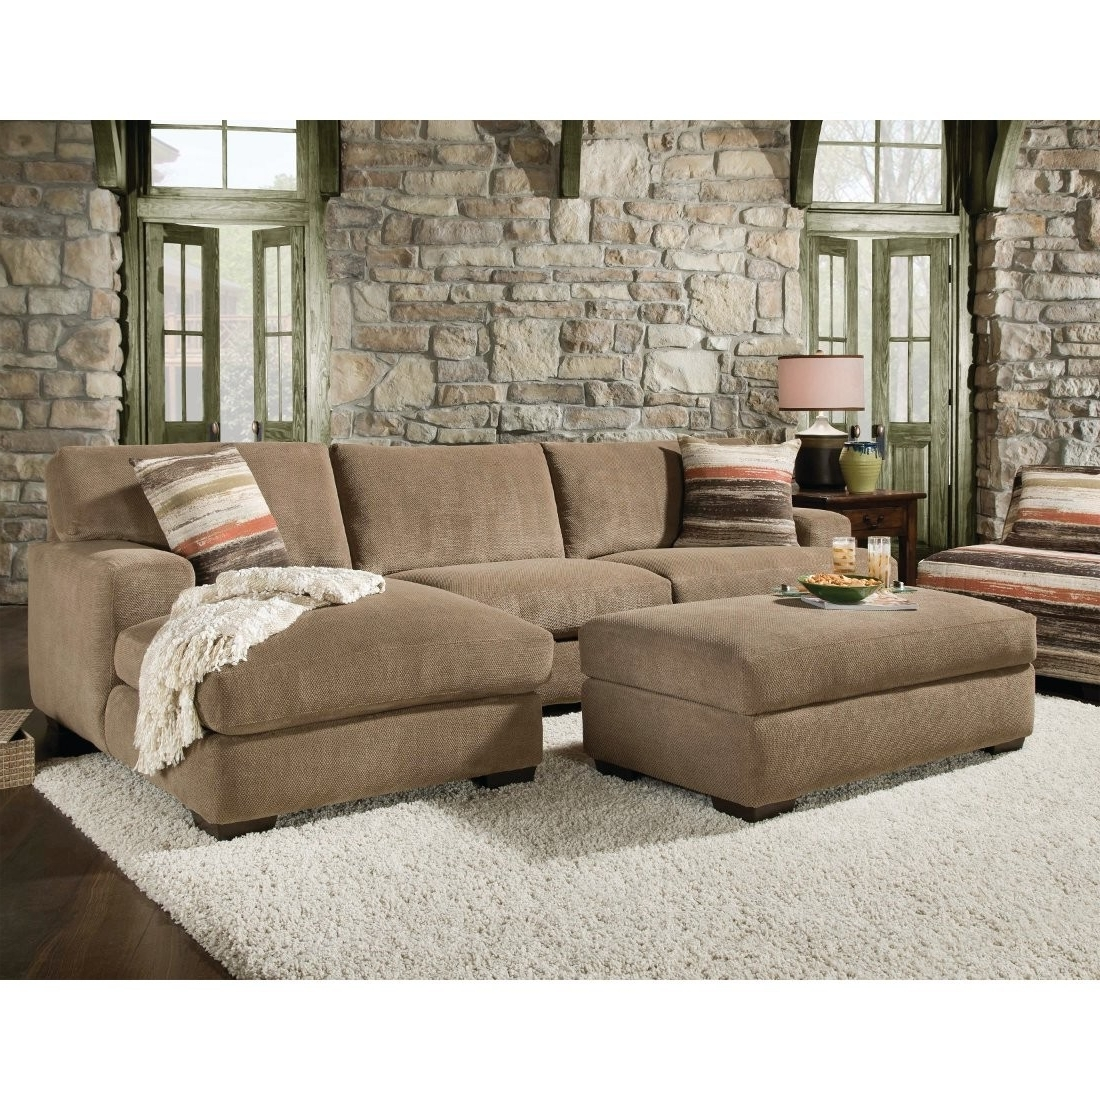 Current Beautiful Sectional Sofa With Chaise And Ottoman Pictures With Brown Sectionals With Chaise (View 4 of 15)